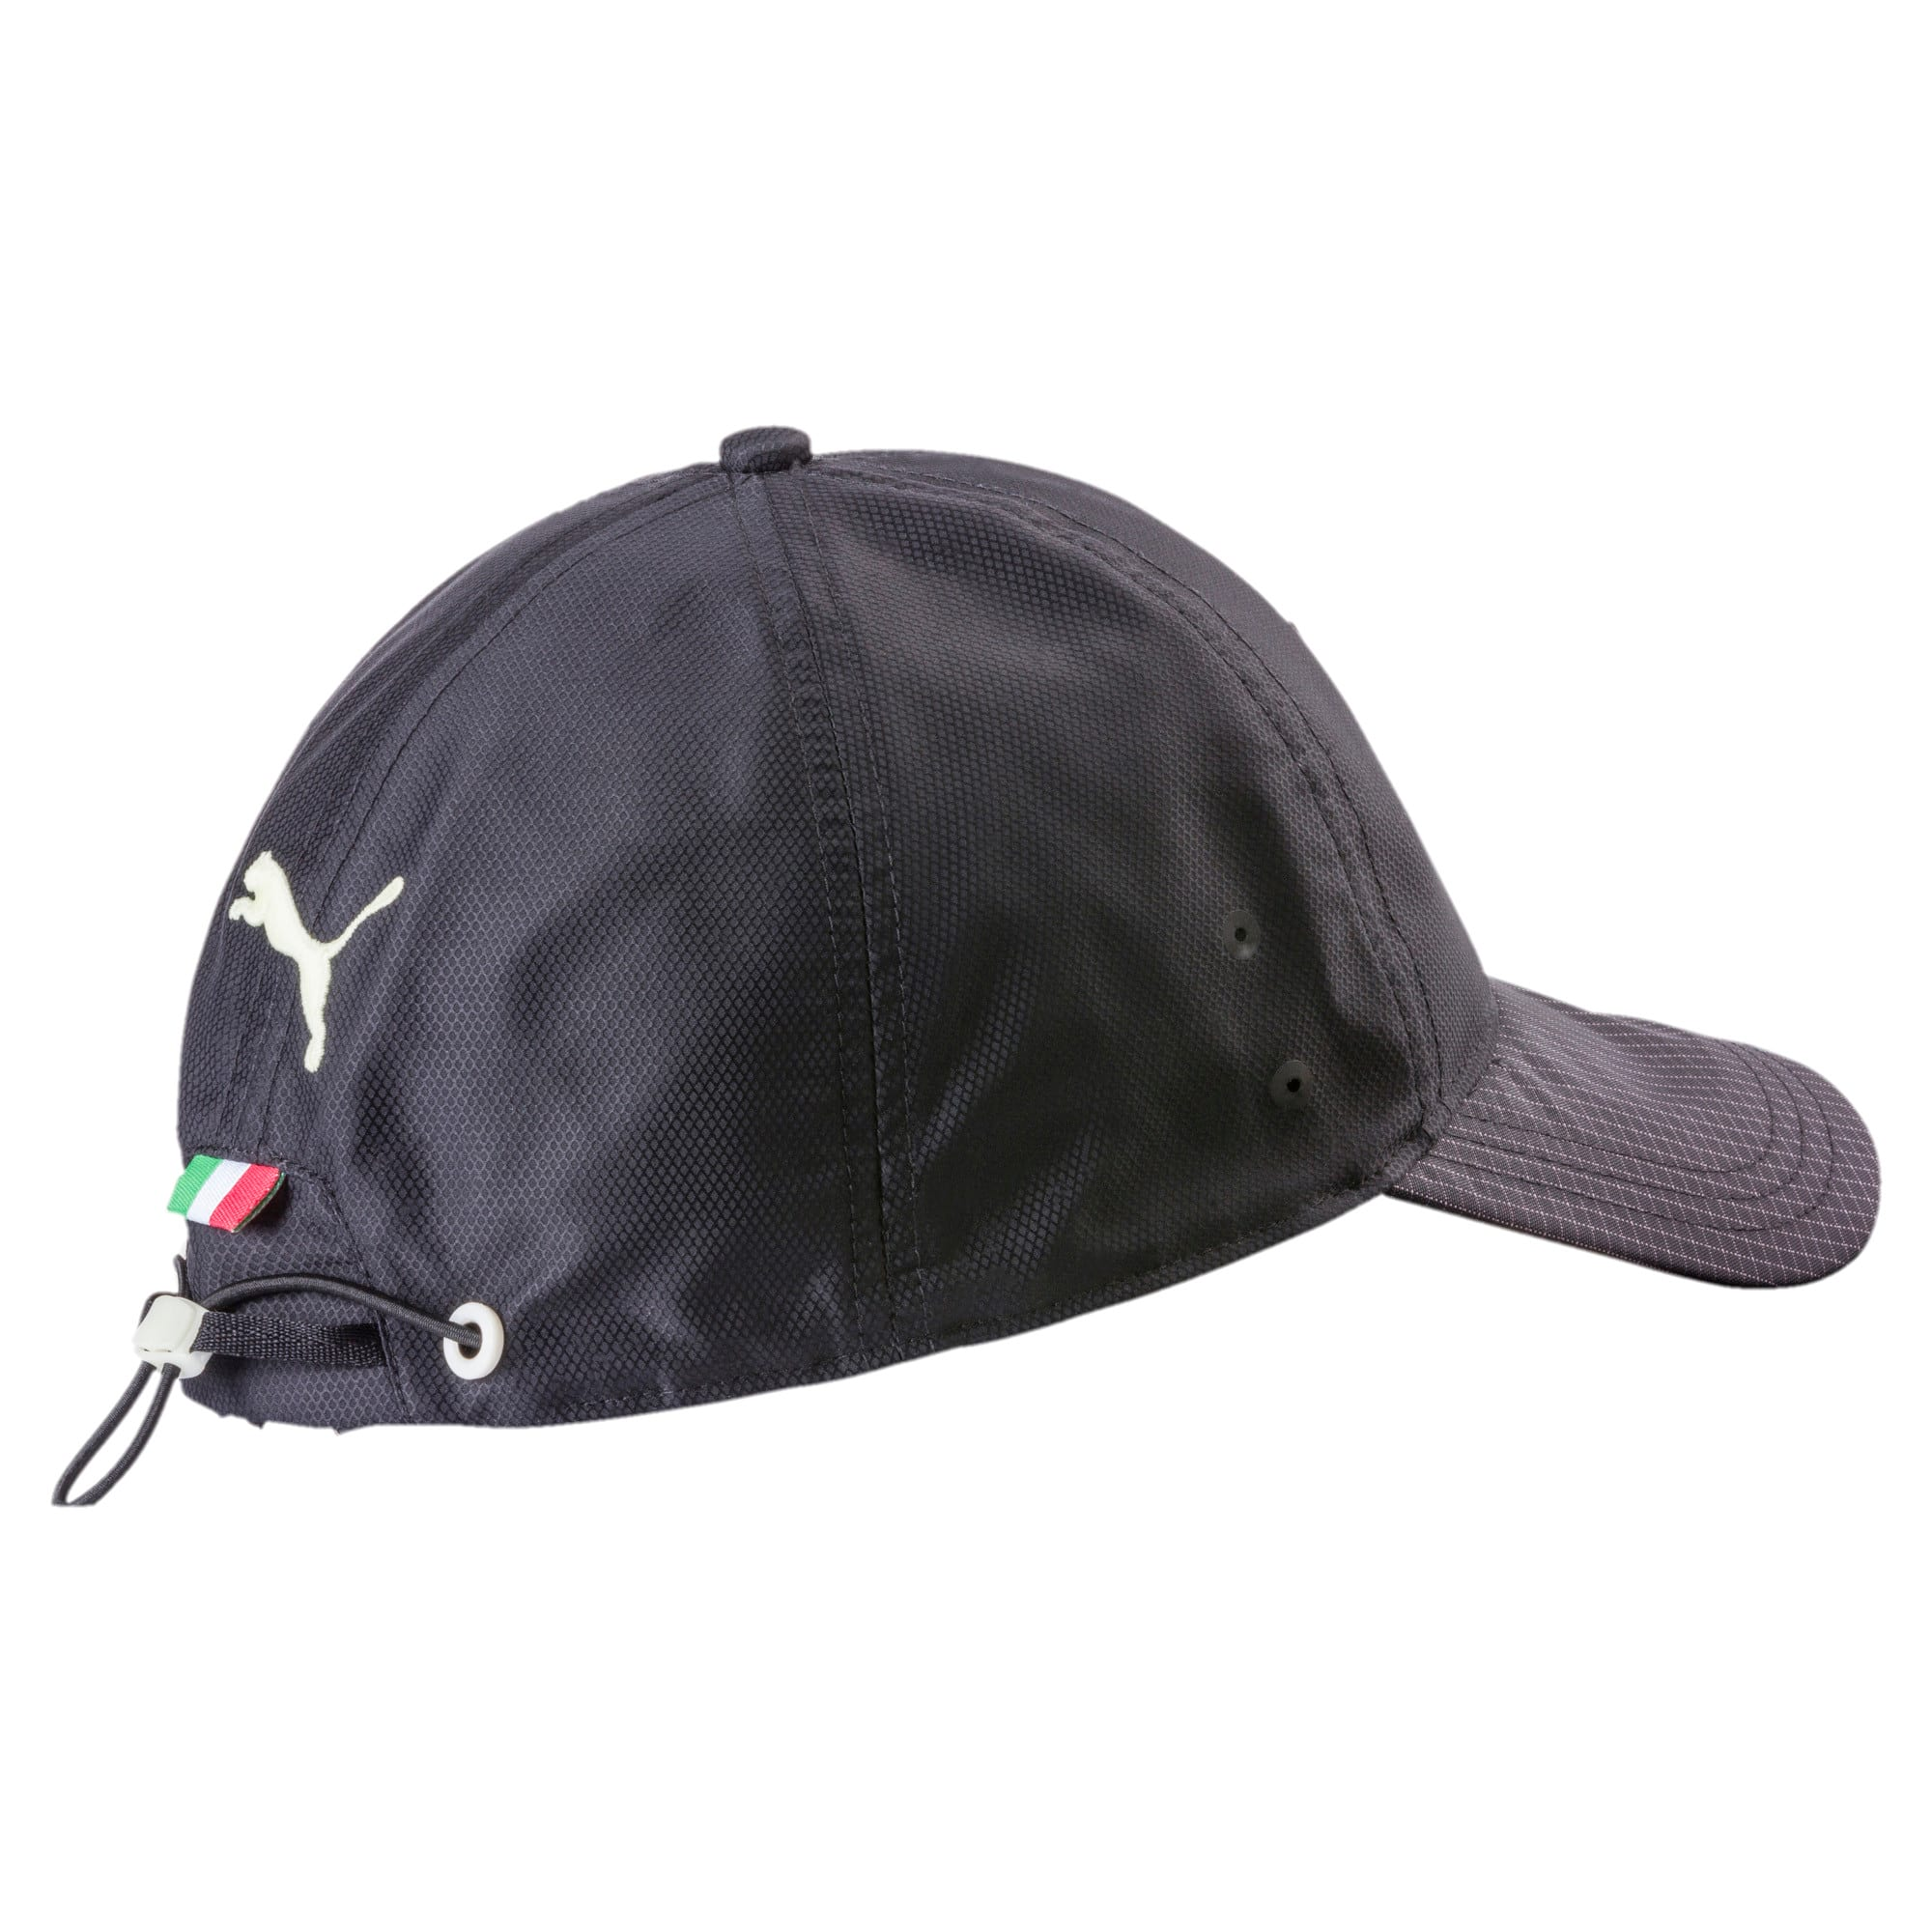 Thumbnail 2 of Ferrari Fanwear Night Baseball Hat, Puma Black, medium